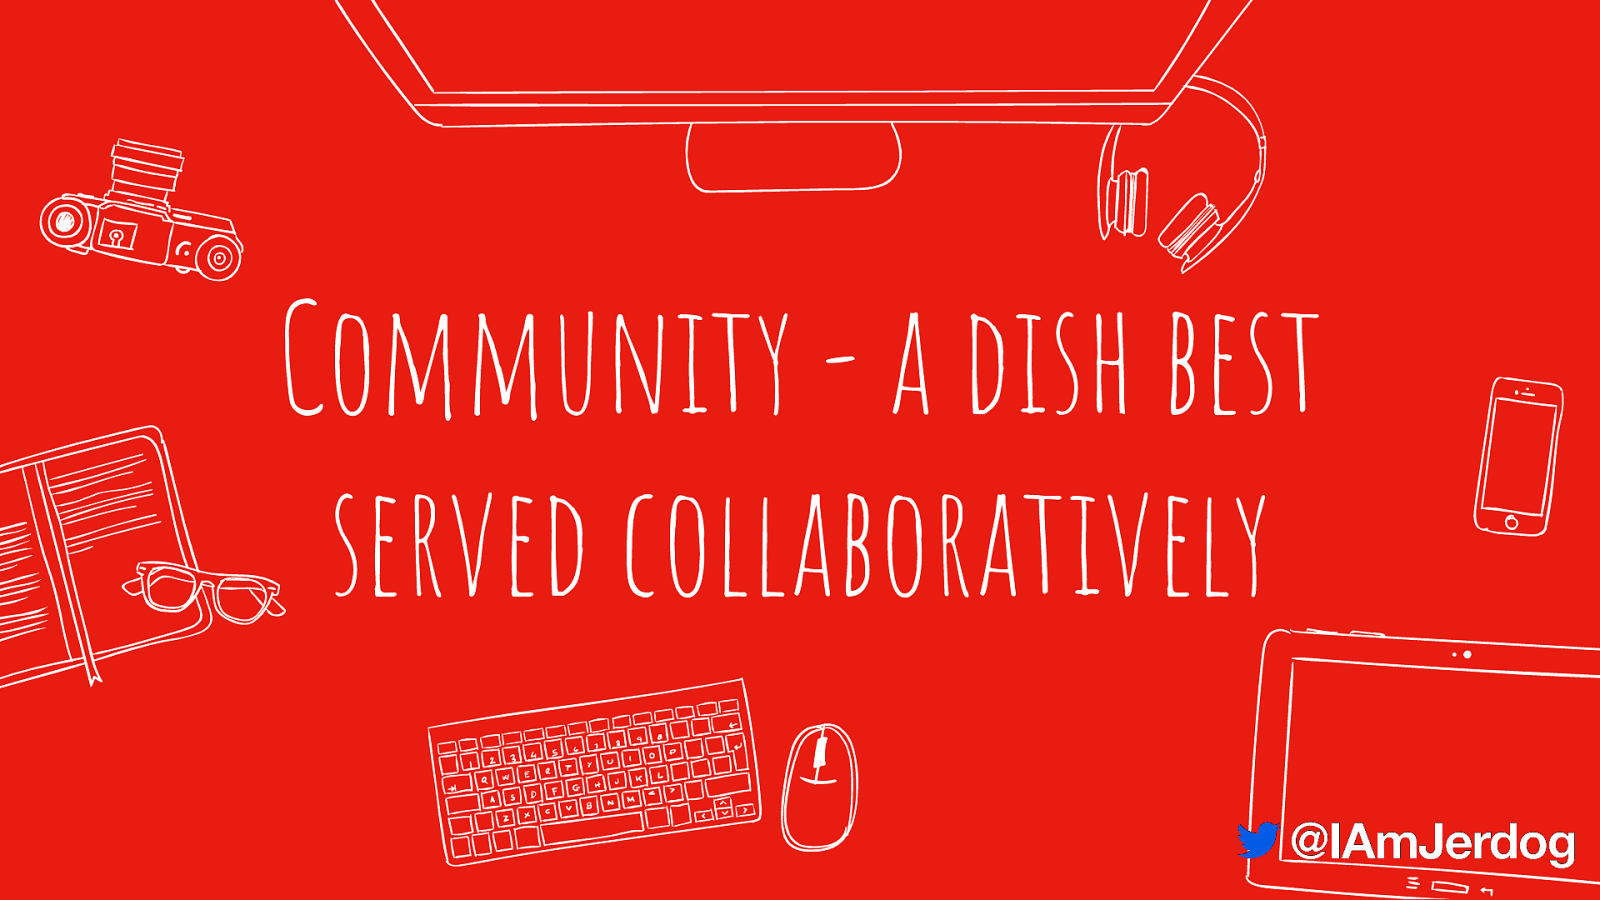 Community - a dish best served collaboratively